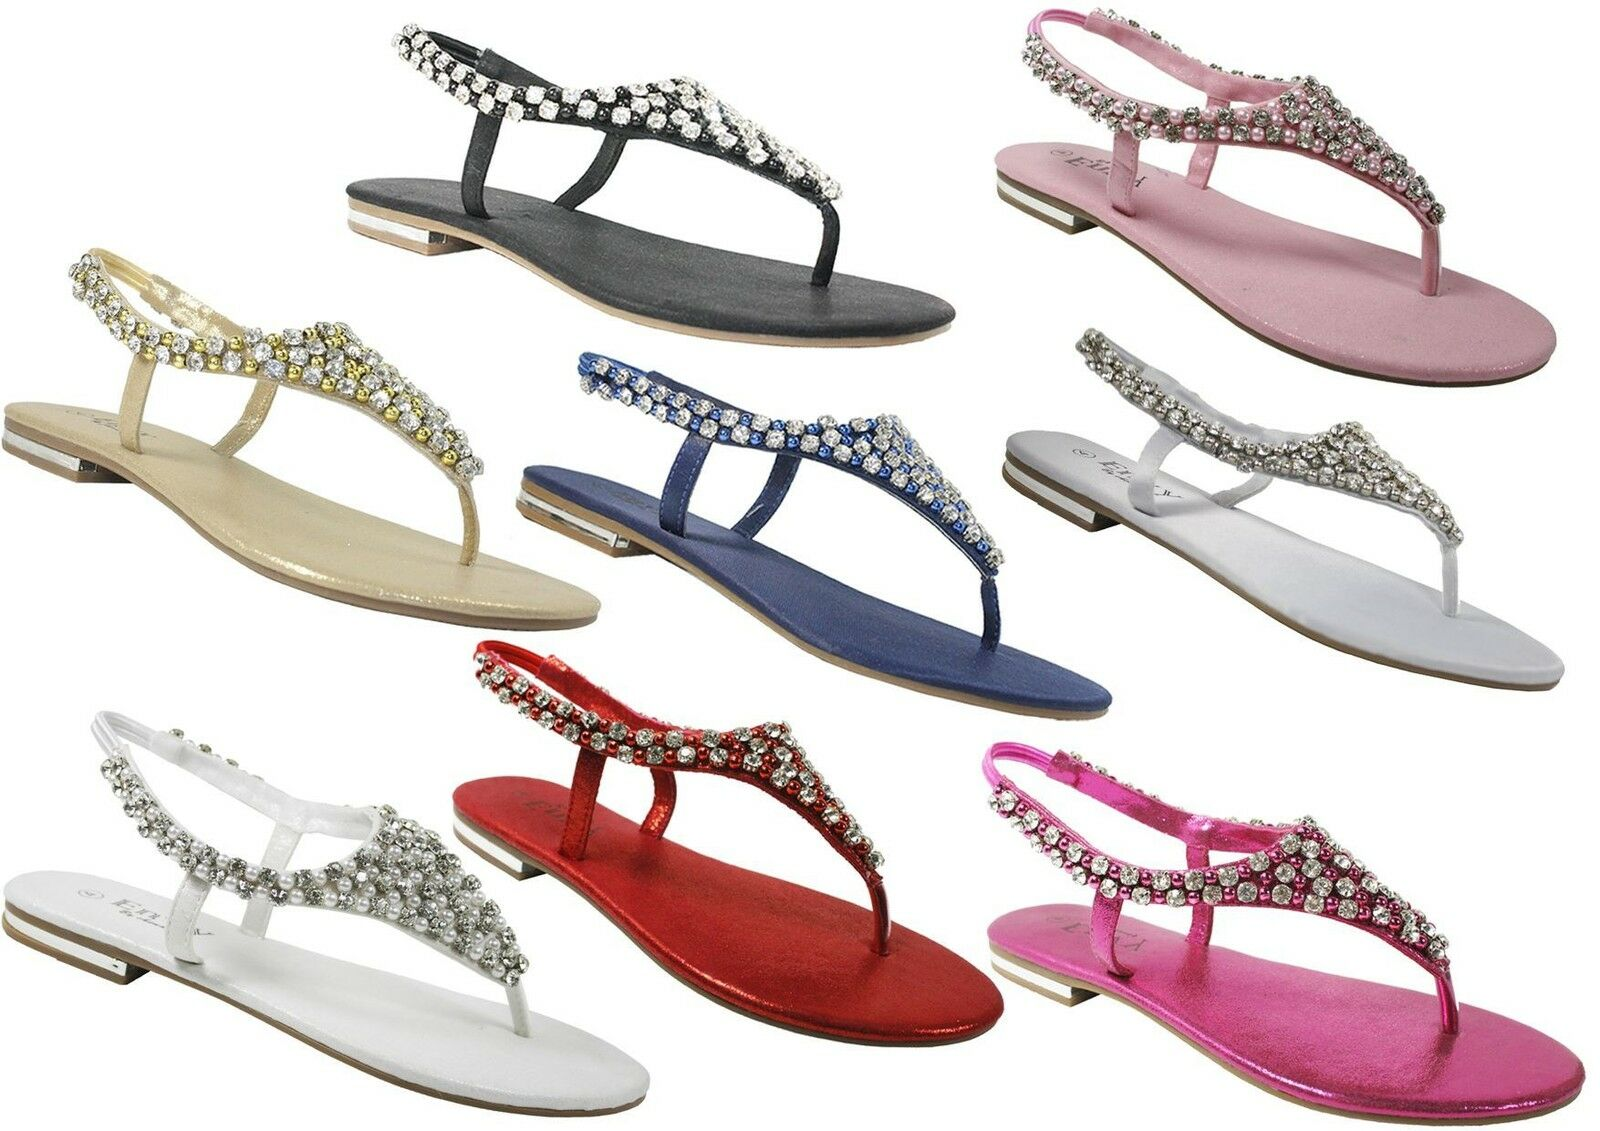 Womens flat sling sandals diamante pearl ladies sling flat back holiday casual party shoes 517602